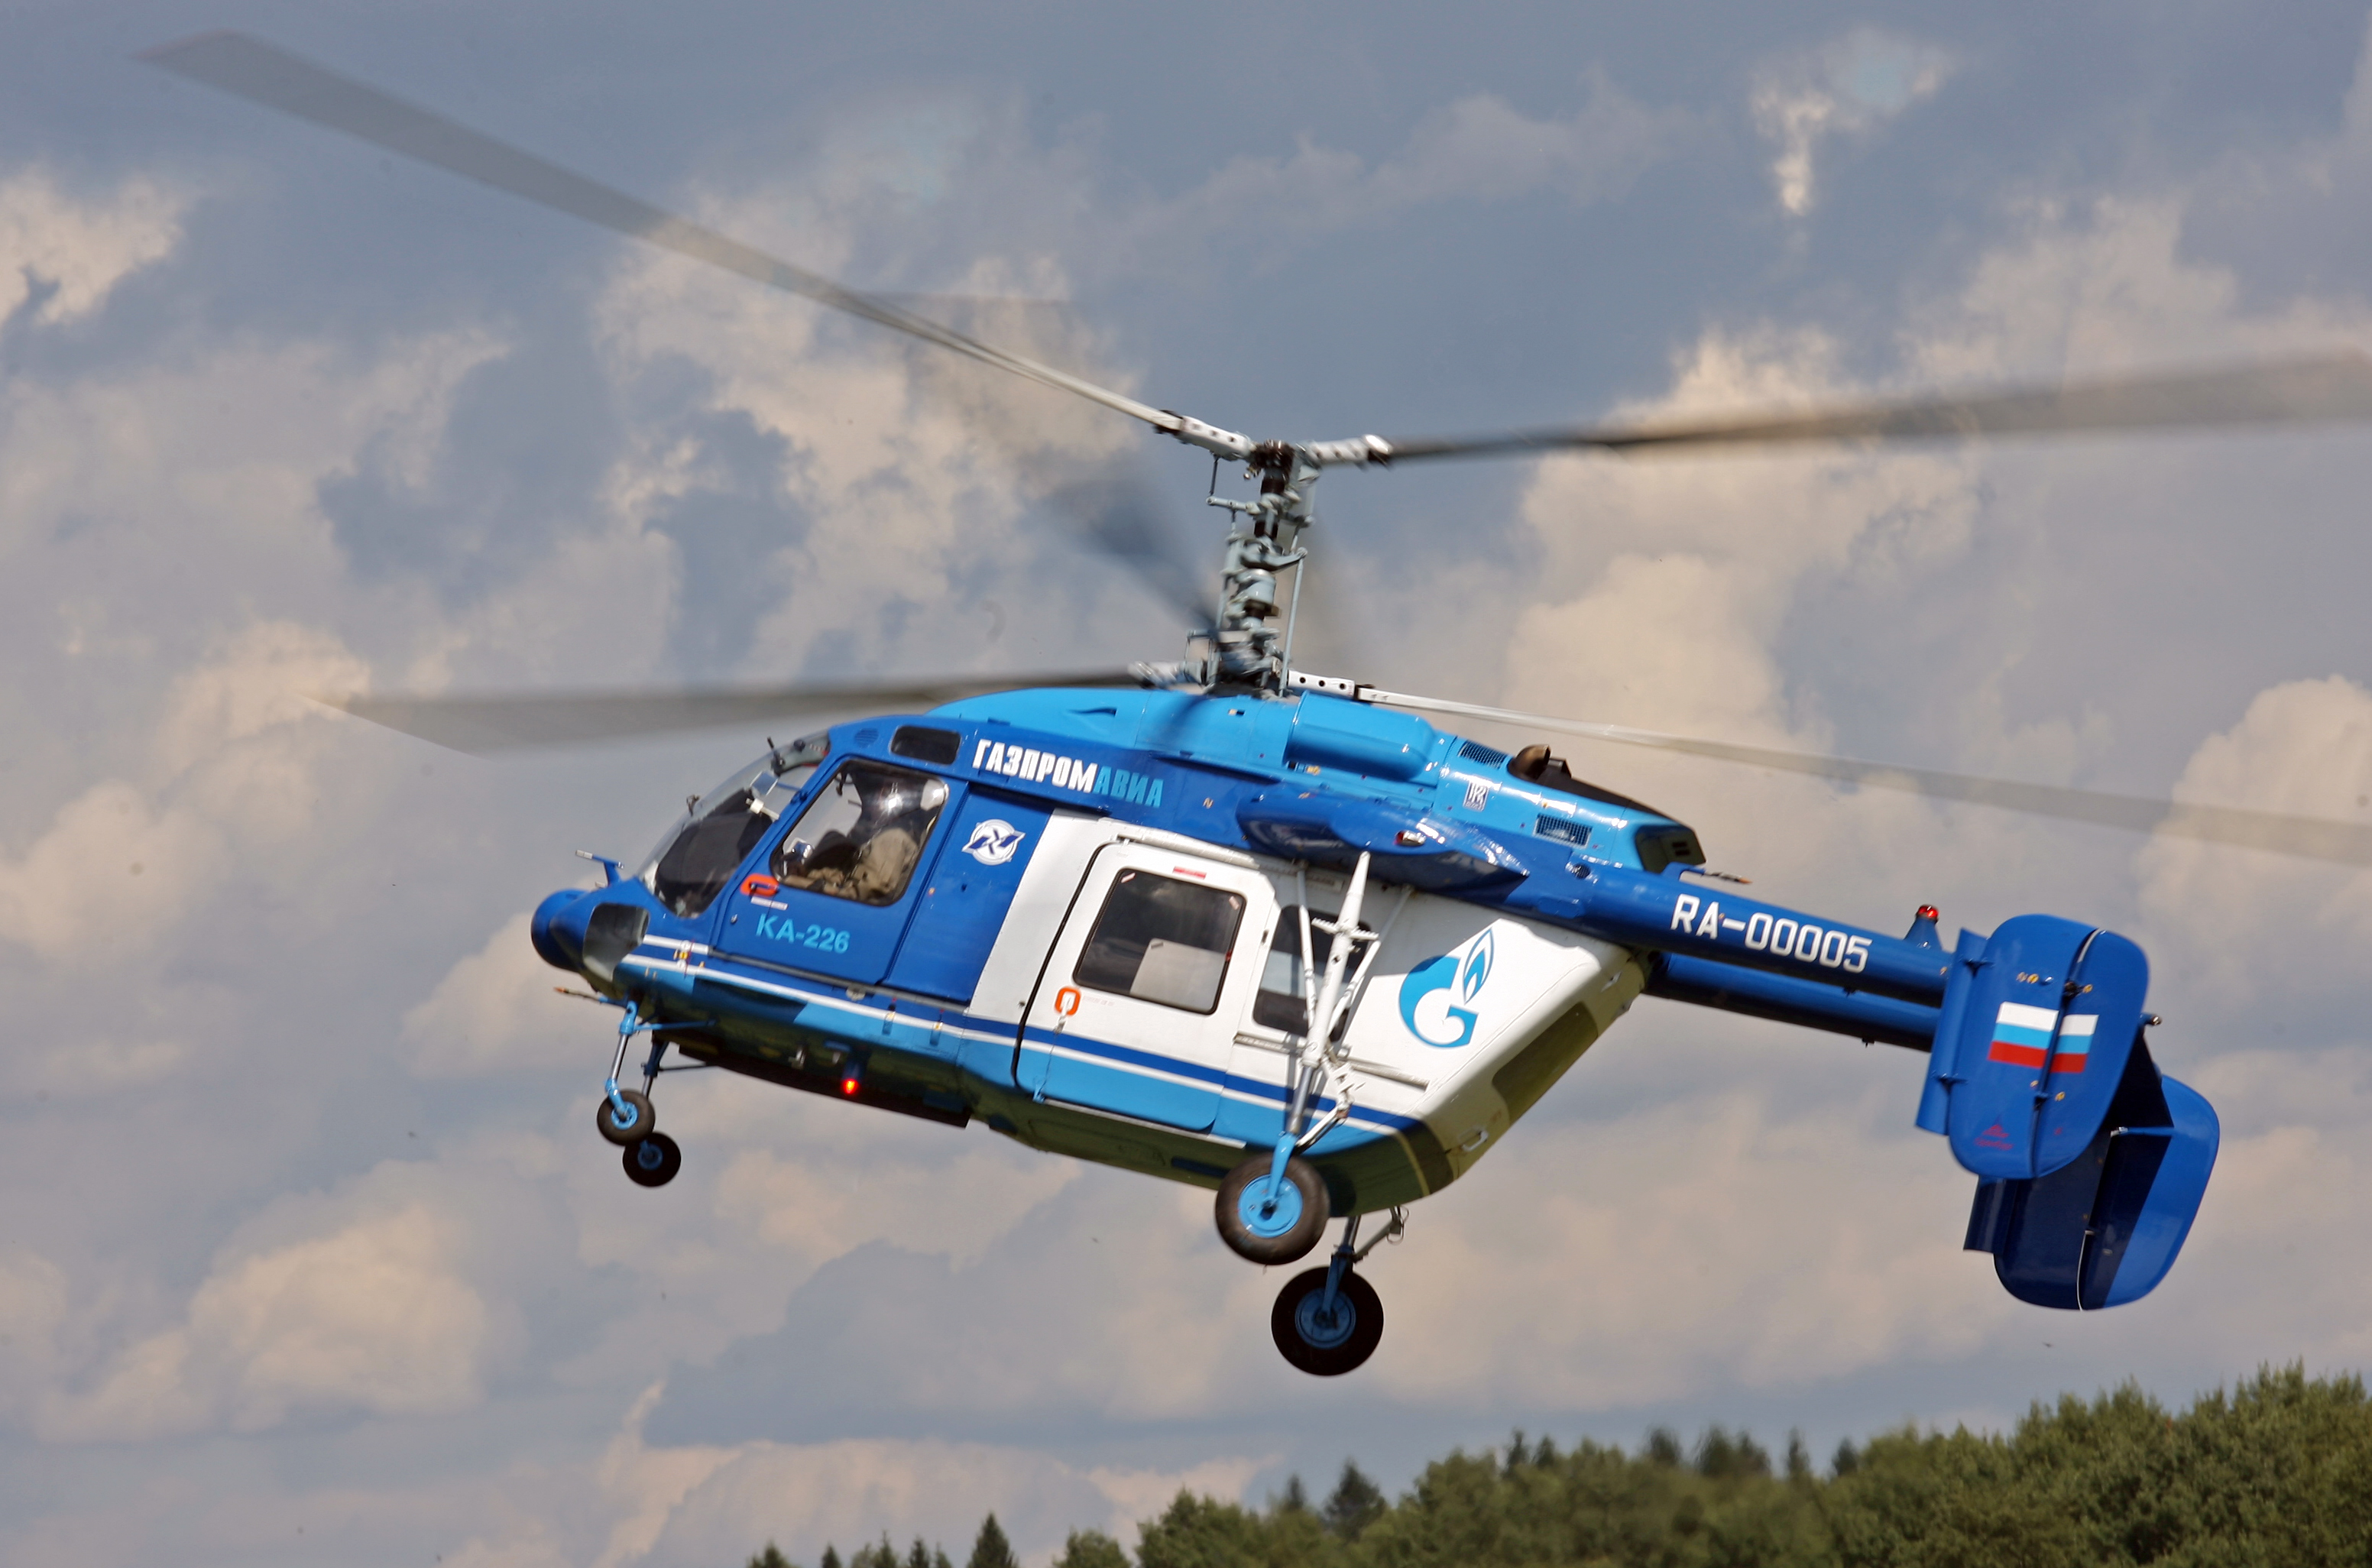 Ka-226 helicopter. Source: Global Look Press